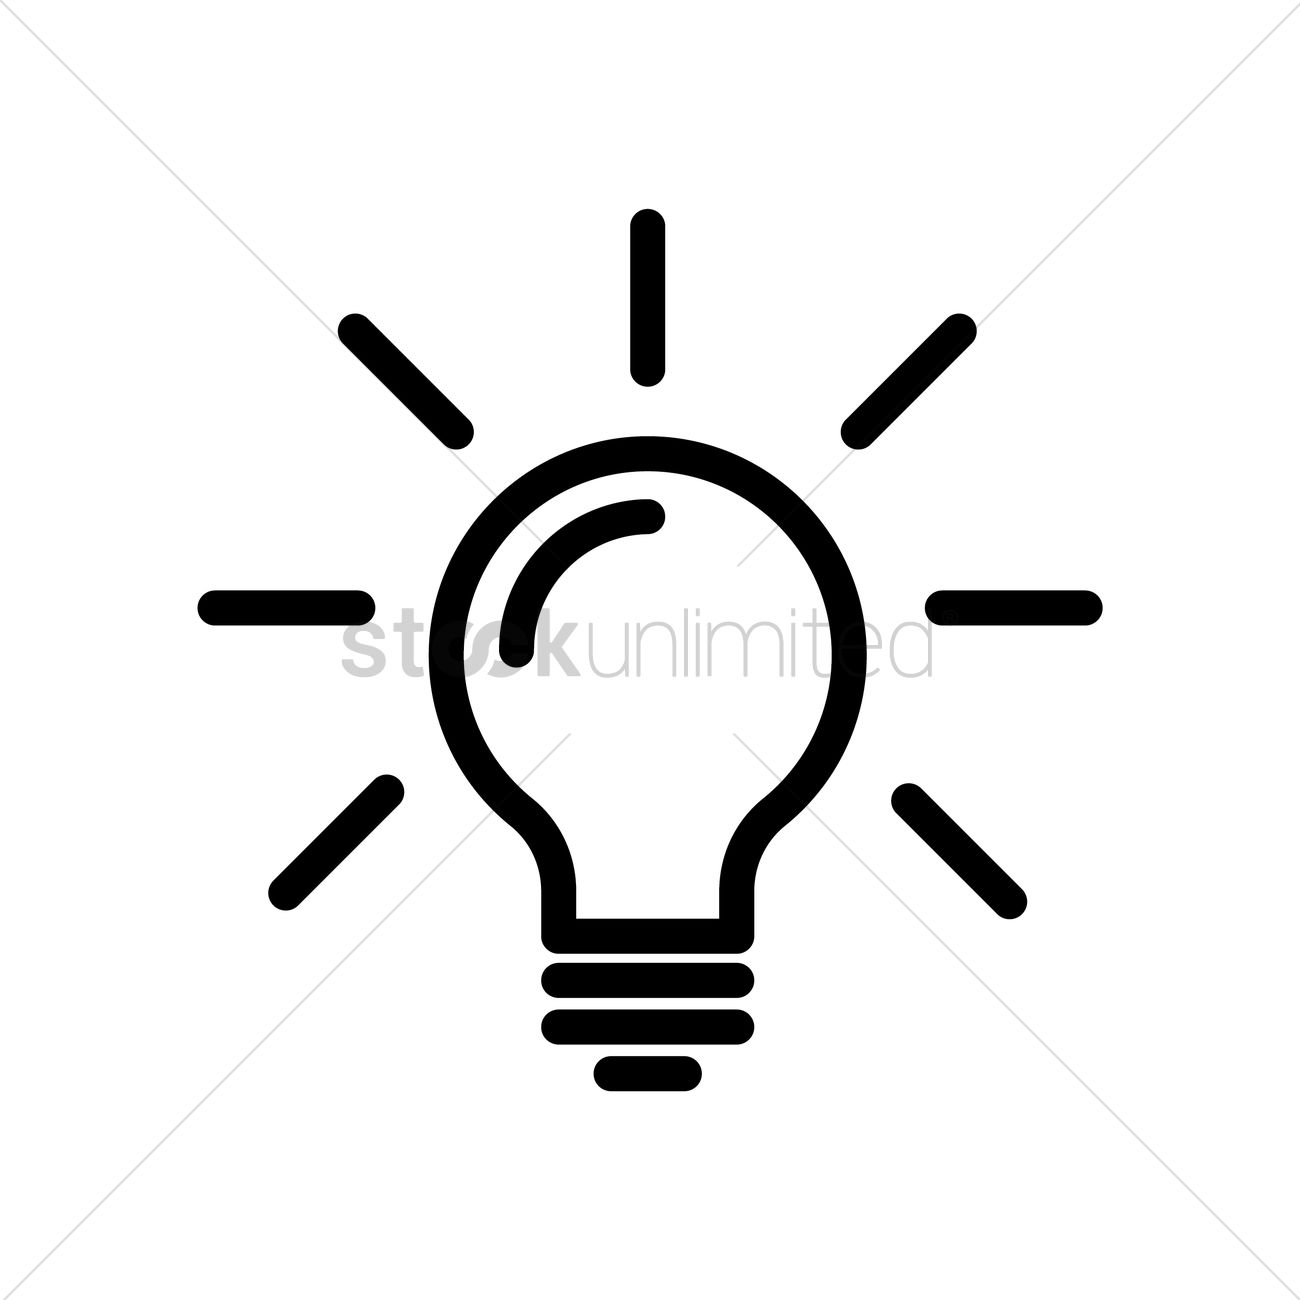 Light bulb concept Vector Image - 1951299 | StockUnlimited